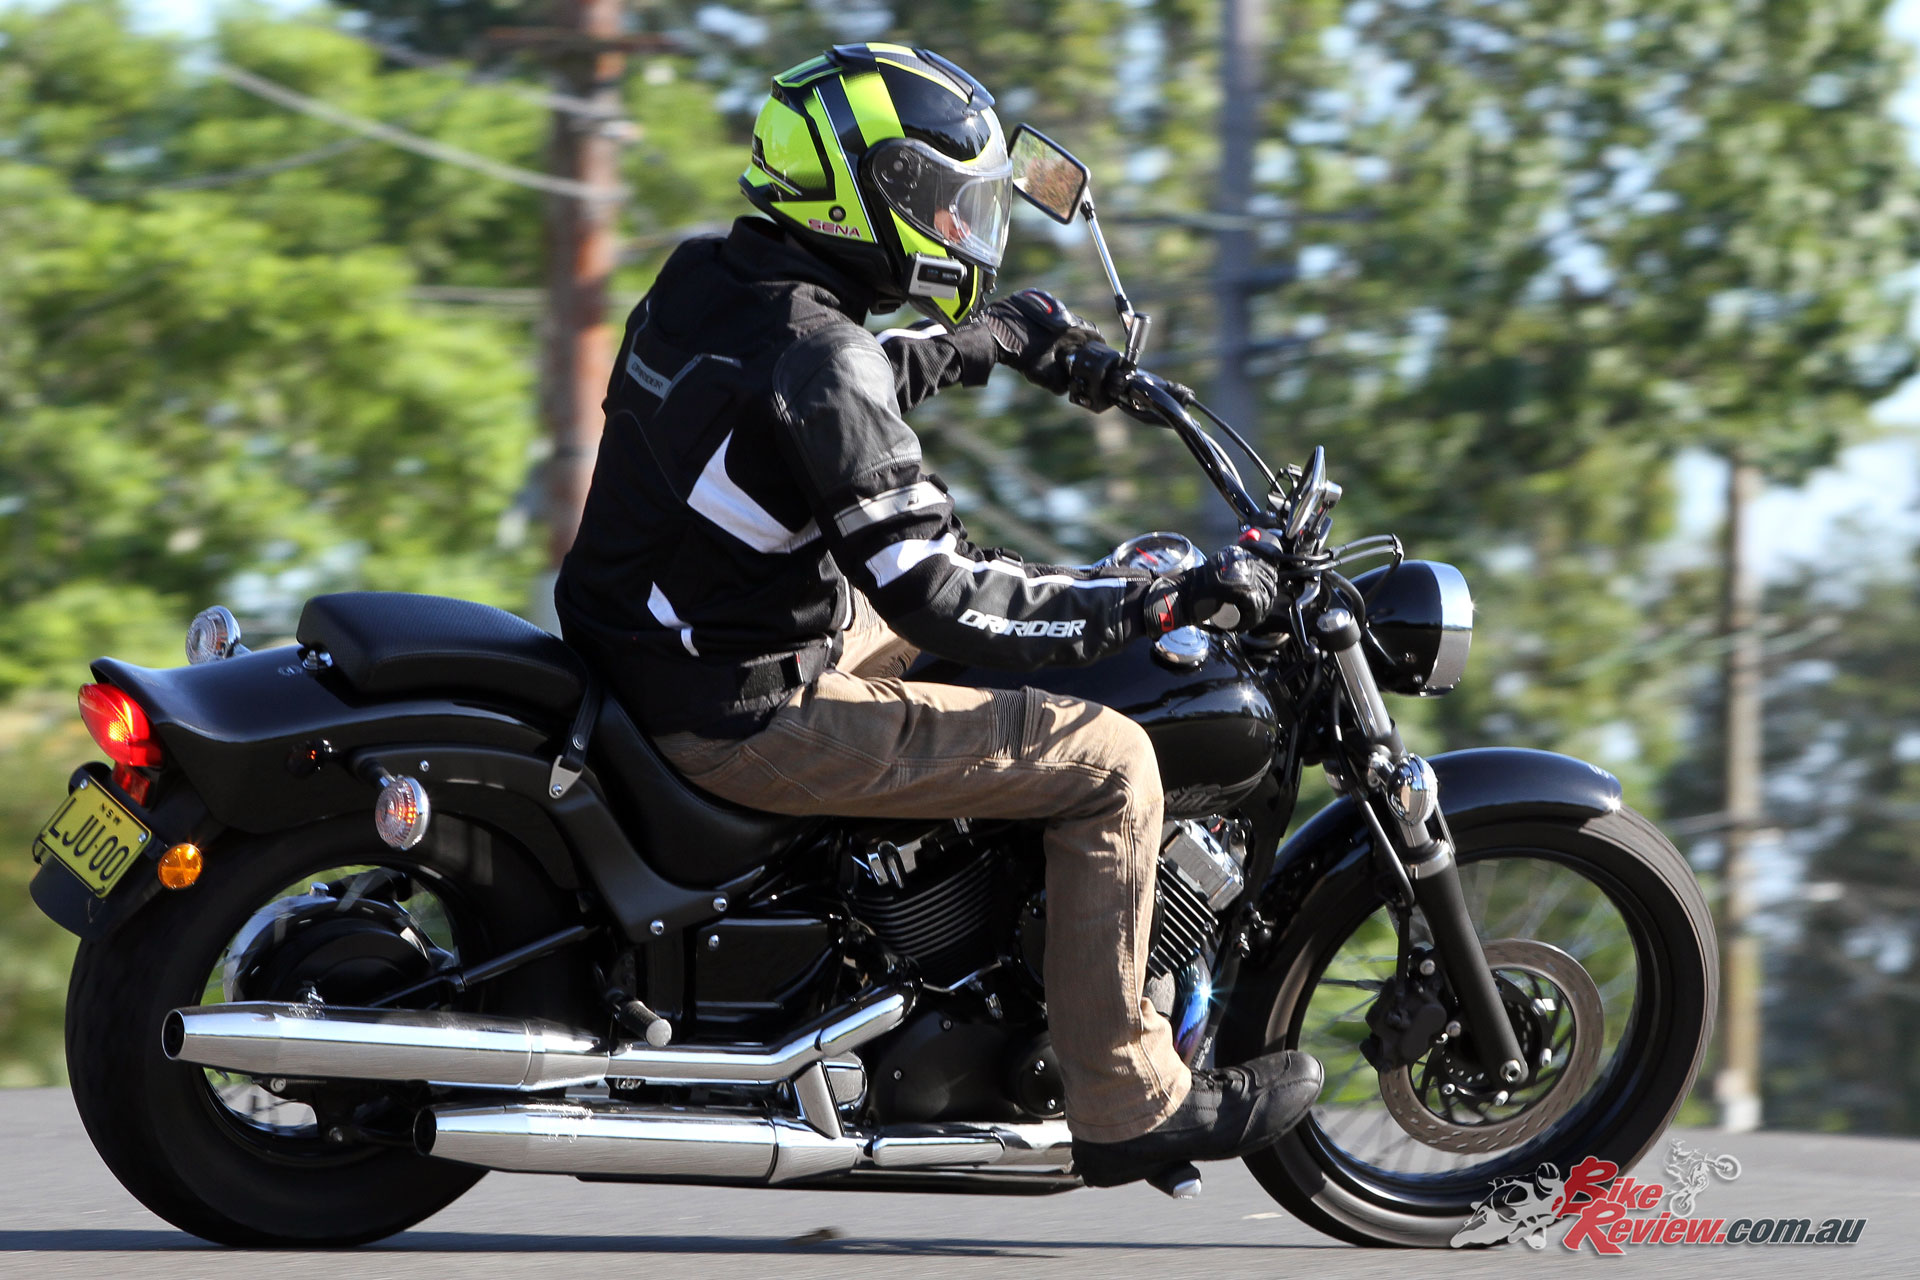 The DRIRIDER Street 2 boot is ideal for everyday use on any type of motorcycle